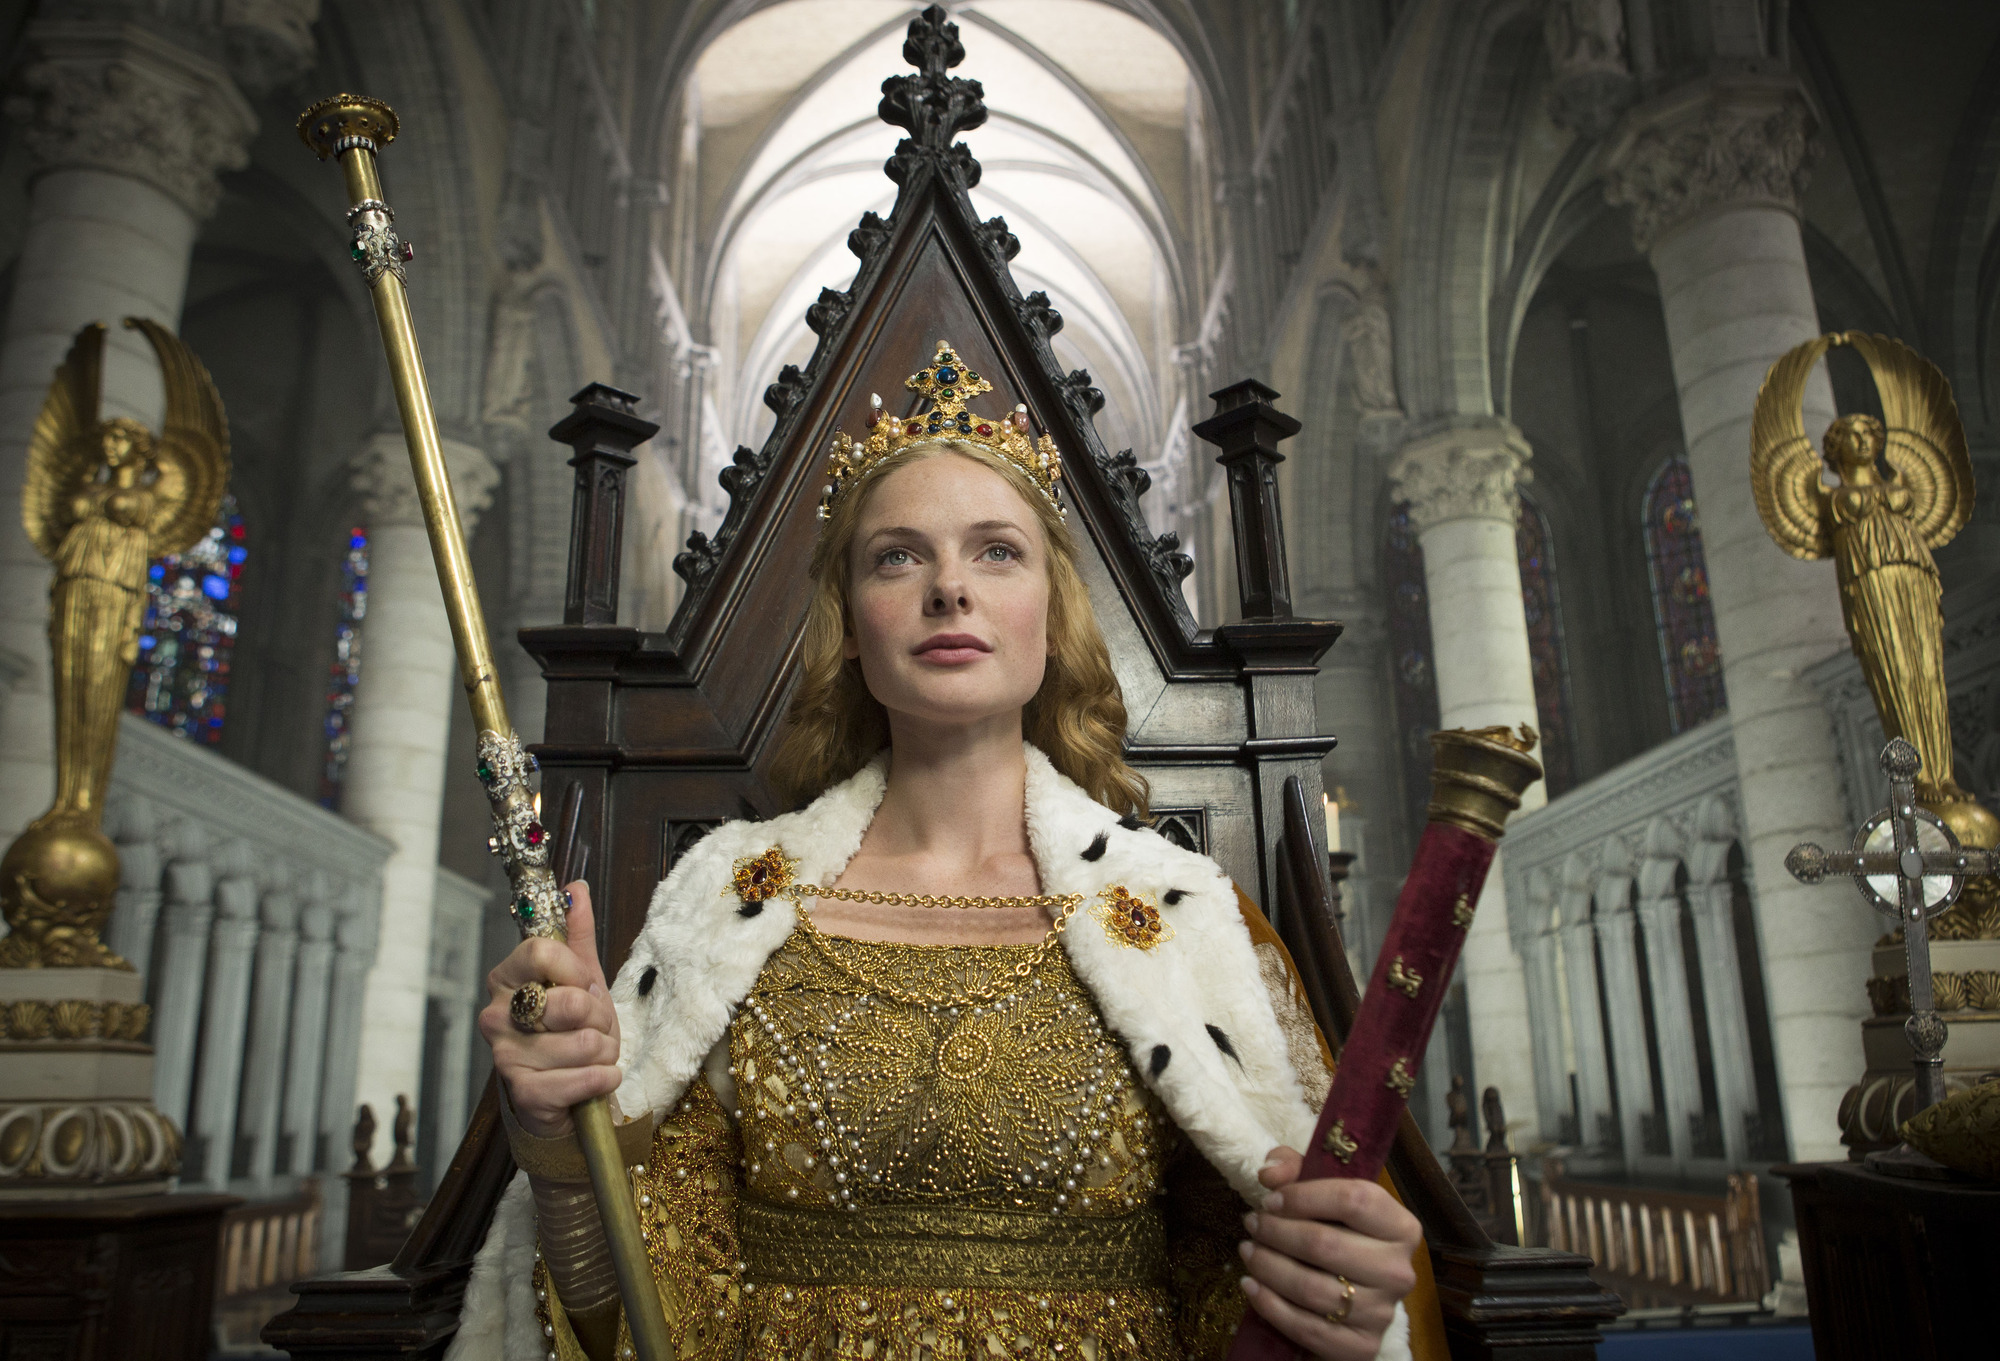 The White Queen star defends 'historically inaccurate' show